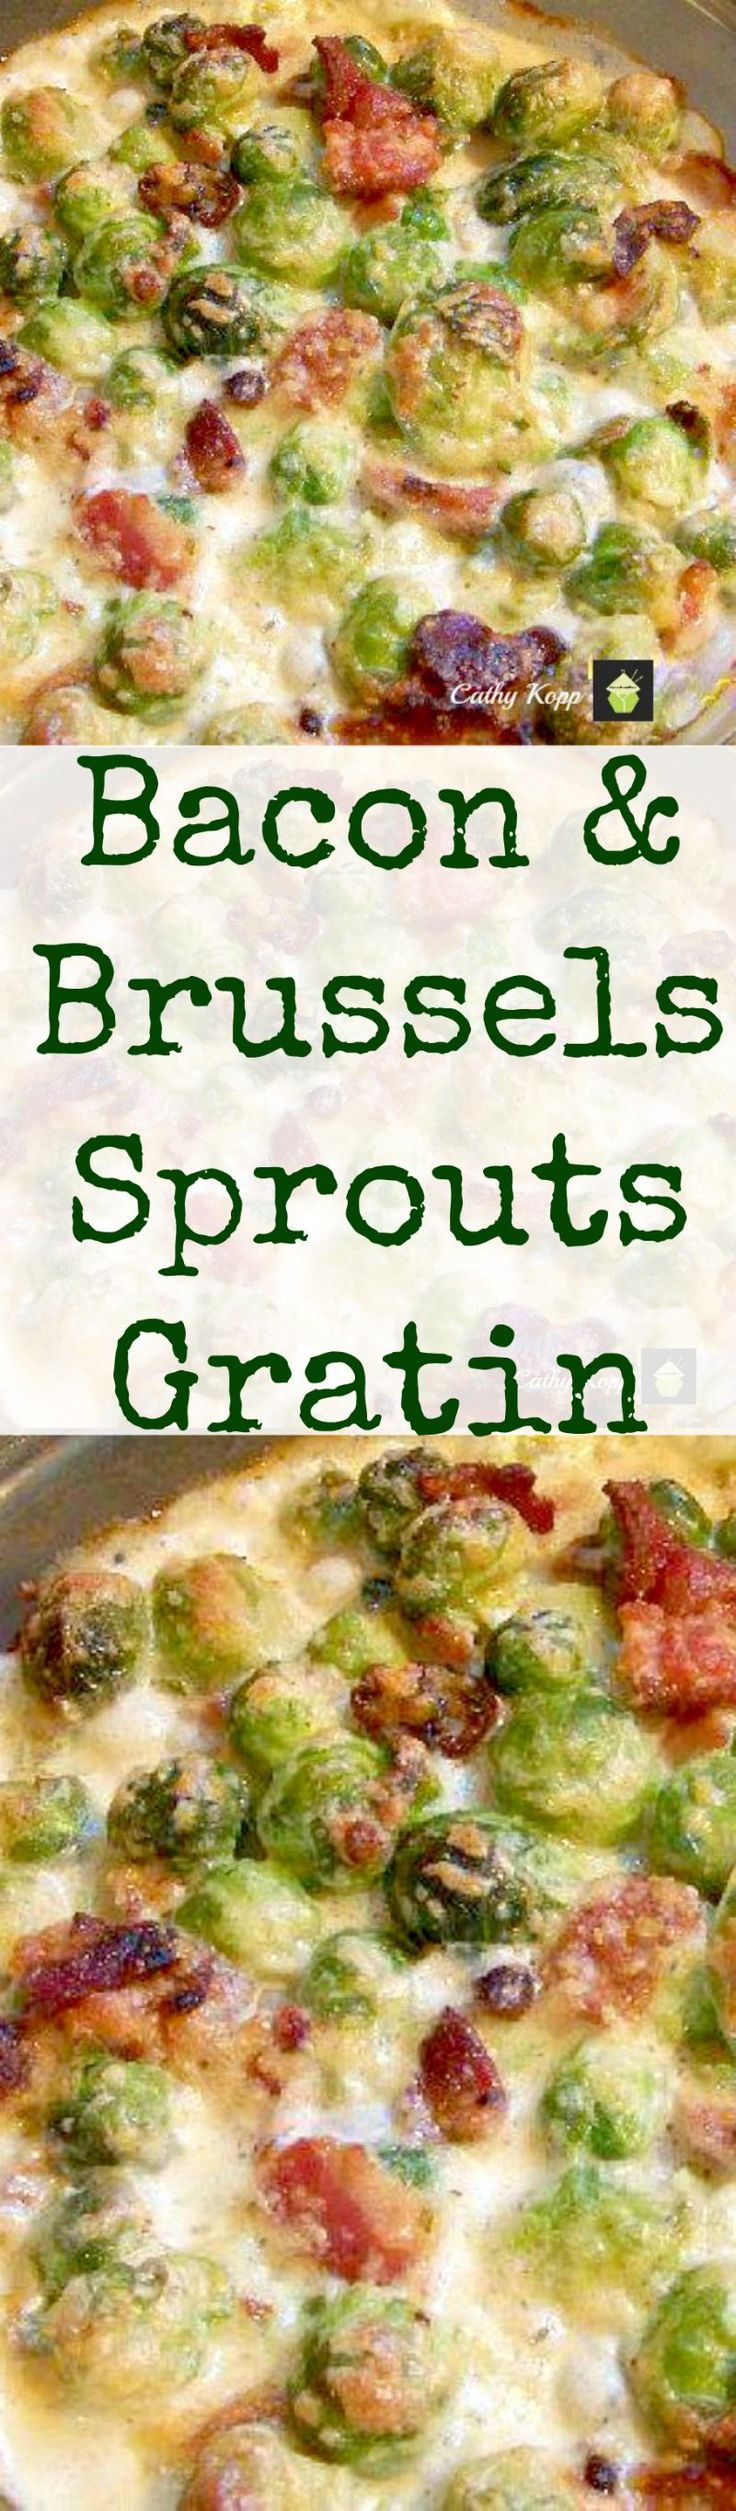 Bacon and Brussels Sprouts Gratin. Bacon, cheese and Brussels Sprouts all baked in a creamy sauce. Very easy recipe and of course absolutely delicious!  #Thanksgiving #Christmas